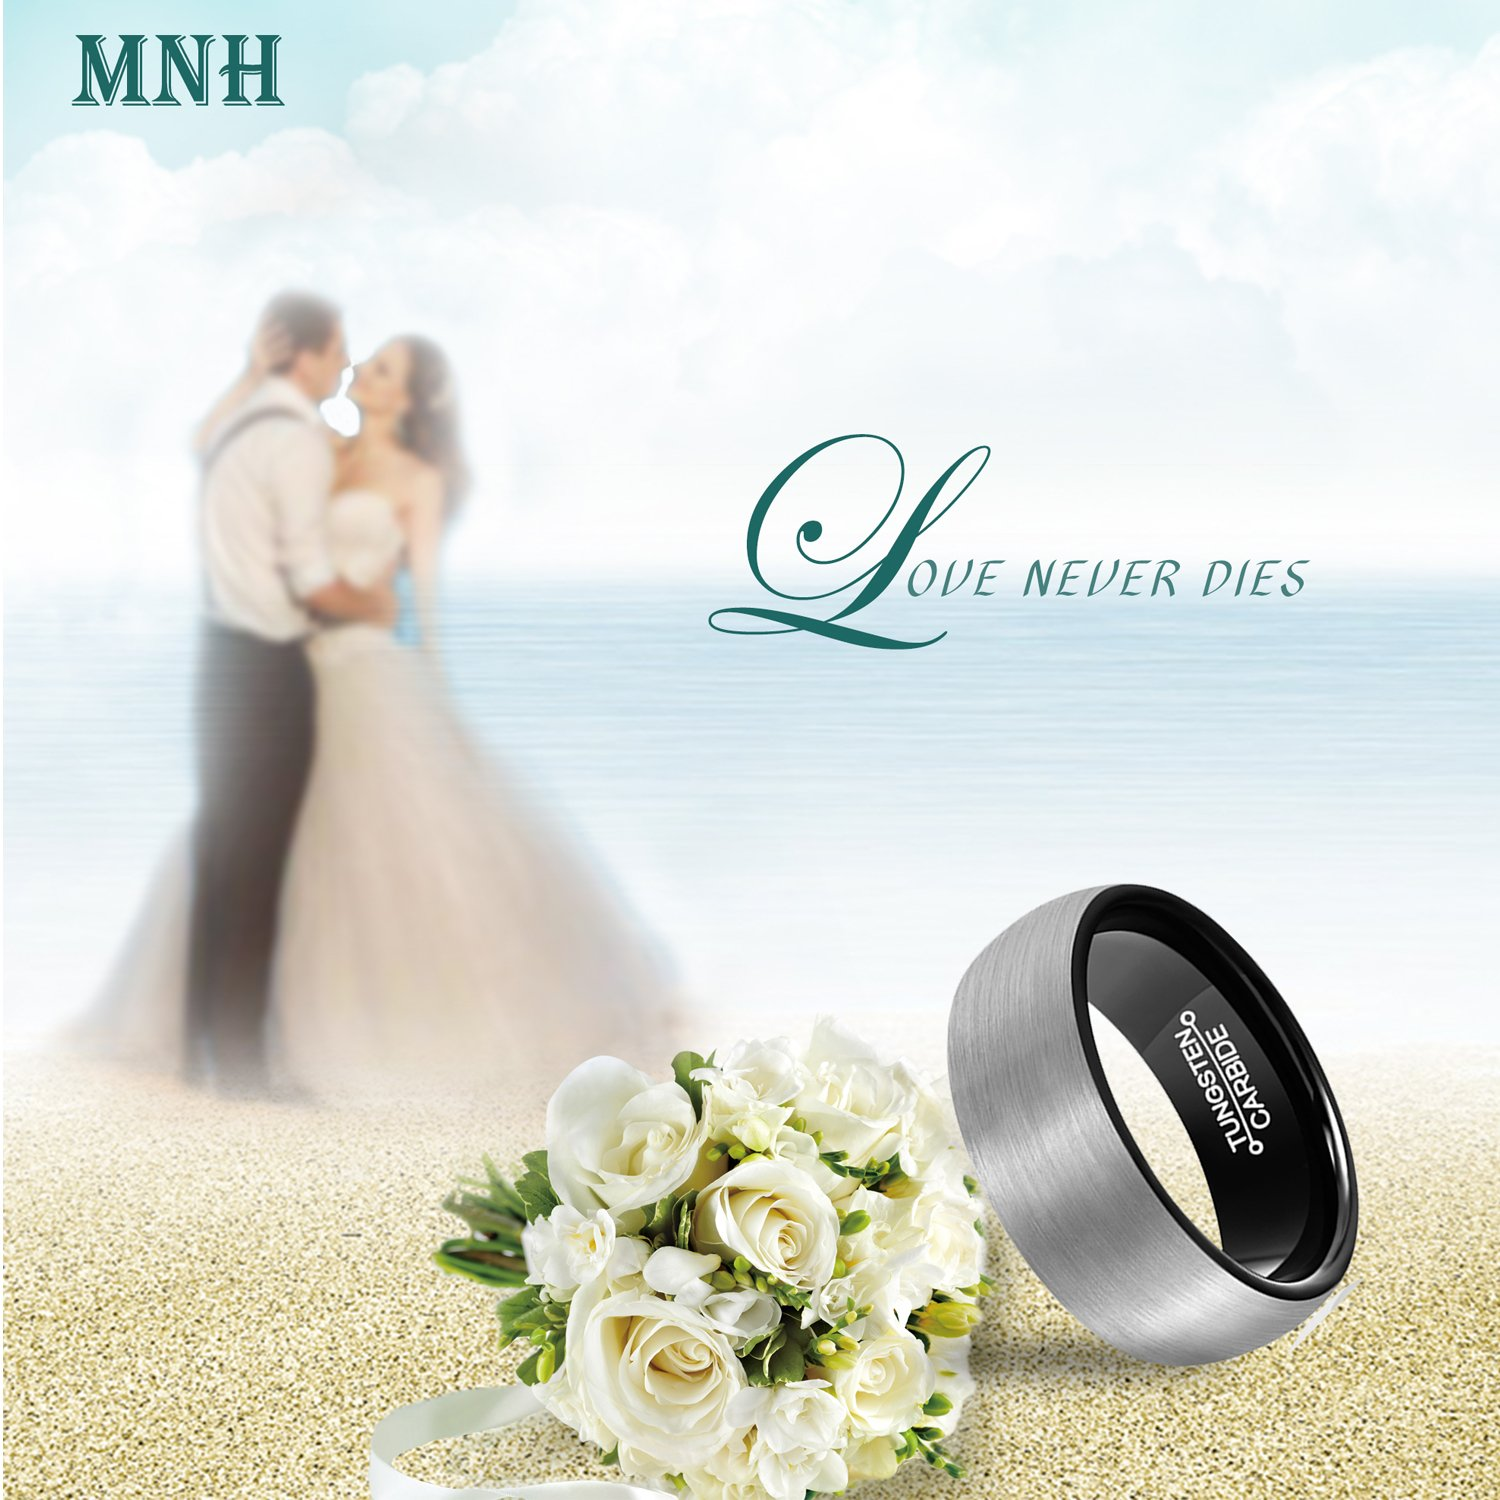 MNH Men's Carbide Tungsten Wedding Band Black 8mm Comfort Fit Brushed Matte Finish Ring Size 9.5 by MNH (Image #4)